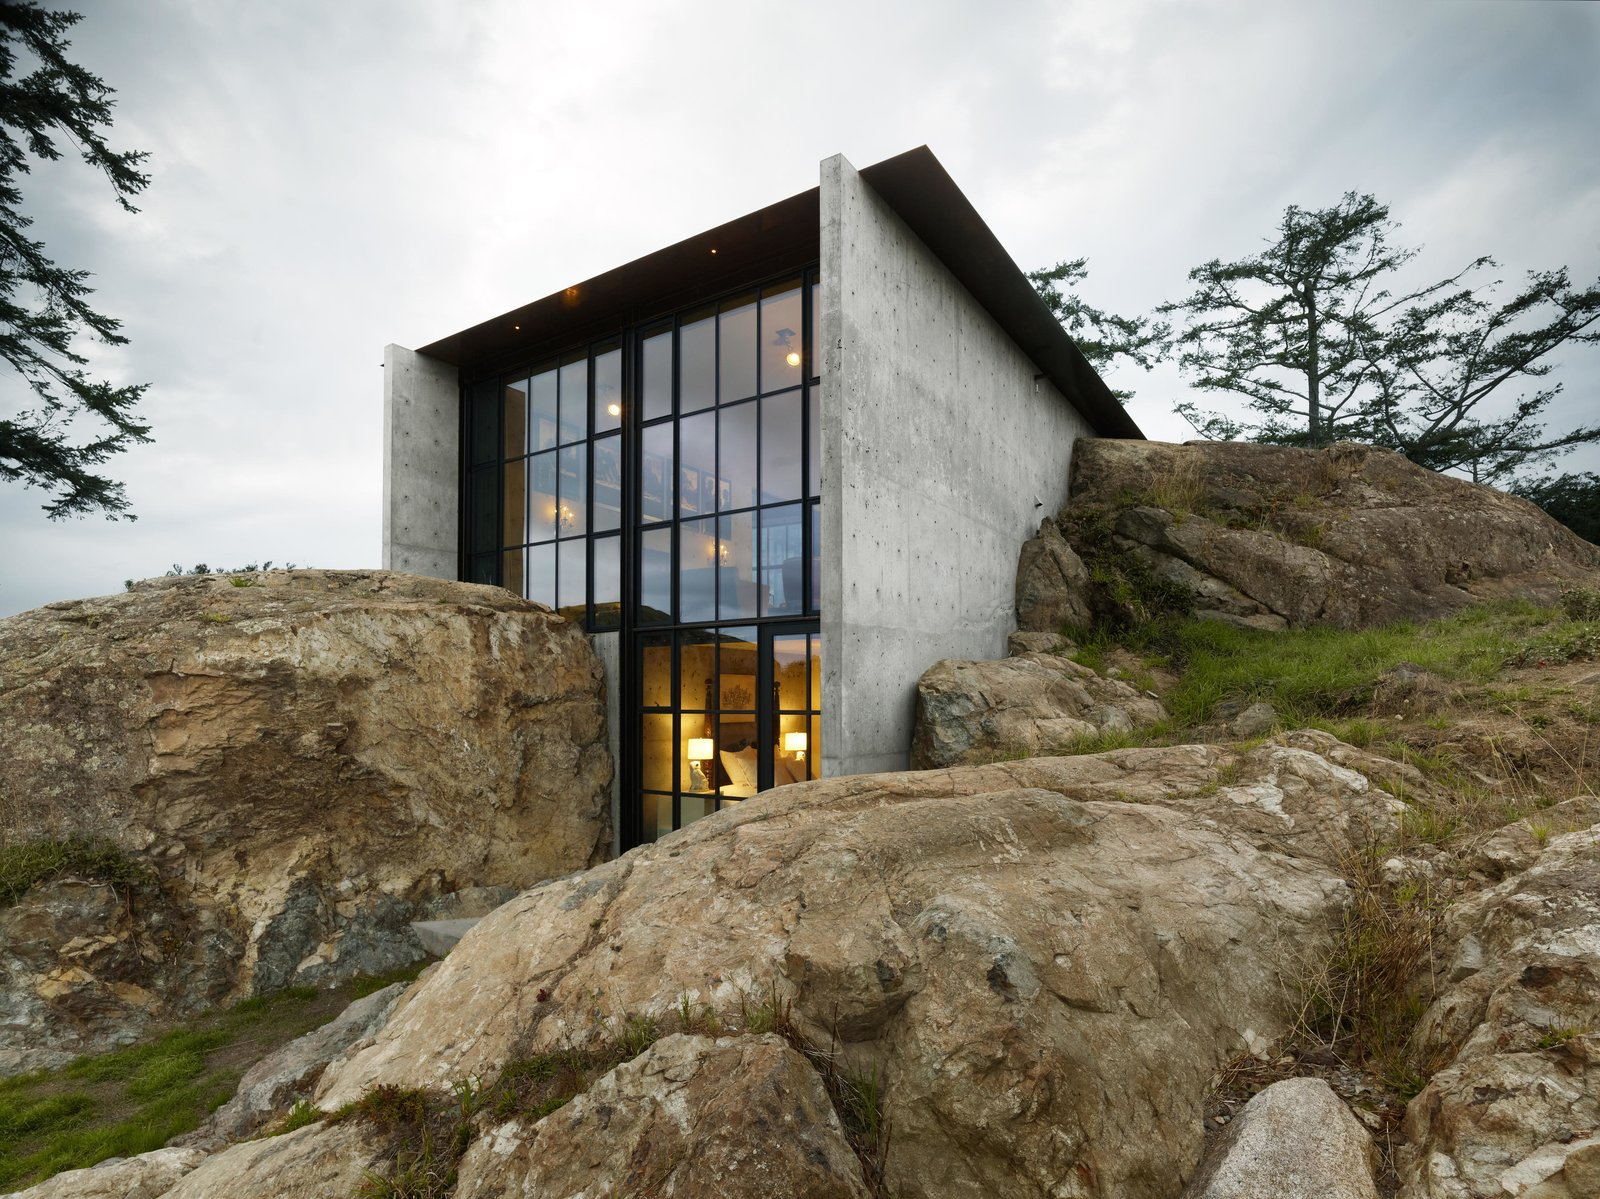 Boulders, Slope, Exterior, House Building Type, Concrete Siding Material, Shed RoofLine, and Glass Siding Material The Pierre | Olson Kundig  Best Photos from The Pierre